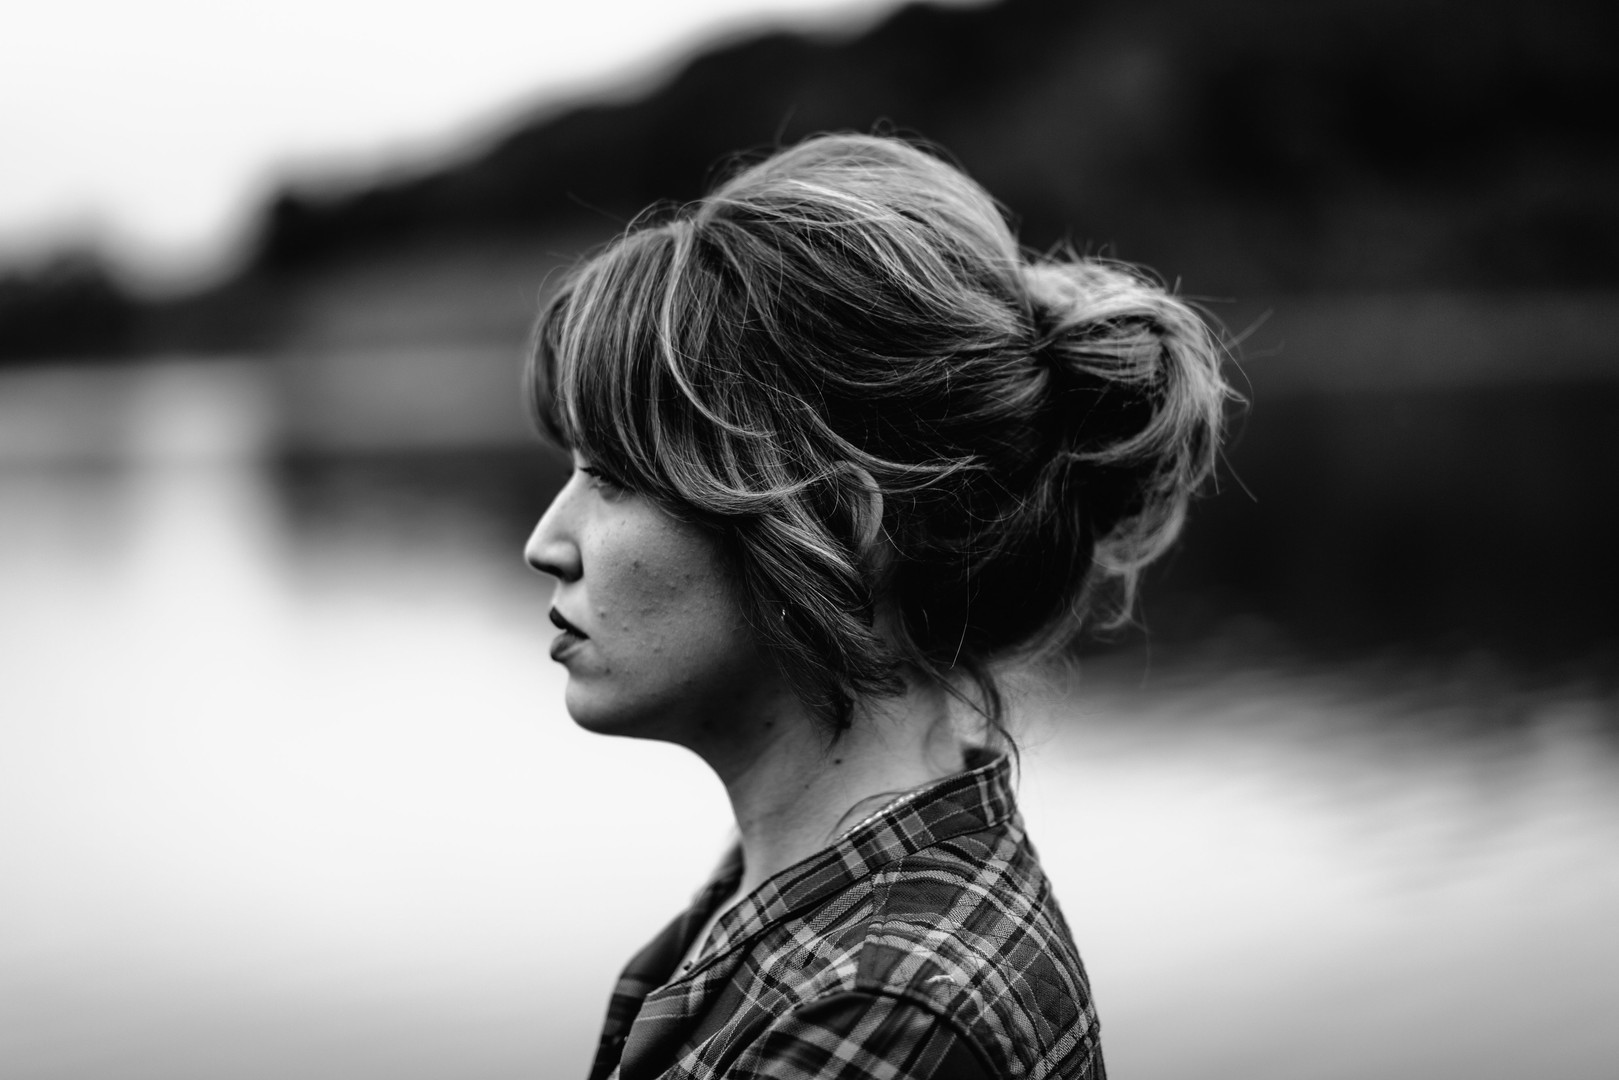 Side profile of woman with Indigo Collective's flawless up-do hairstyle with bangs near Clinton, NJ